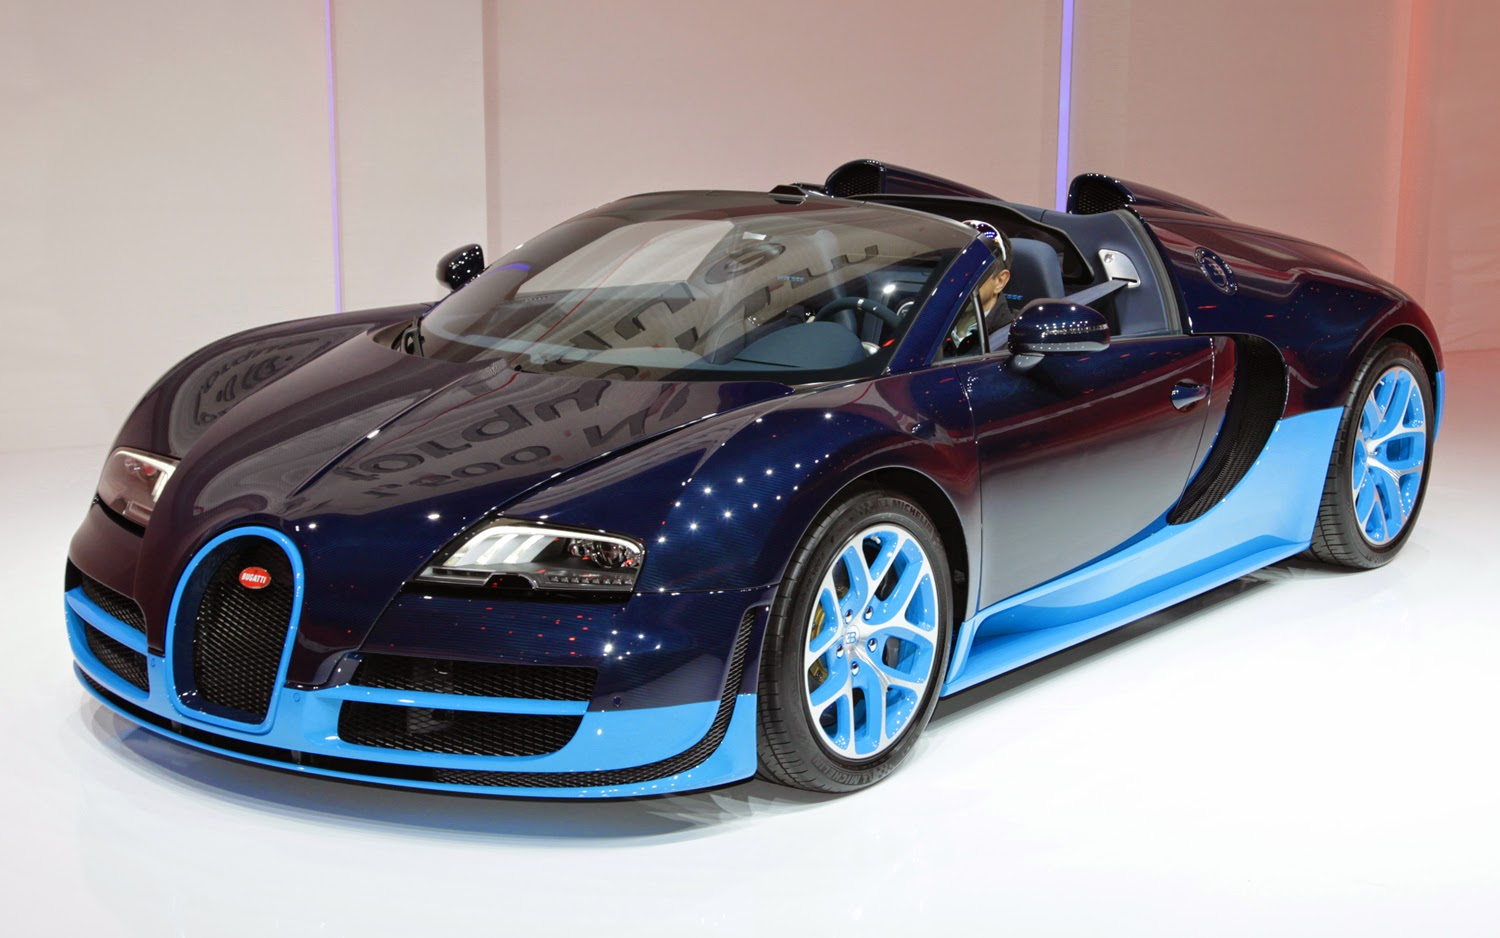 bugatti veyron wallpaper 1080p free hd resolutions car wallpapers. Black Bedroom Furniture Sets. Home Design Ideas